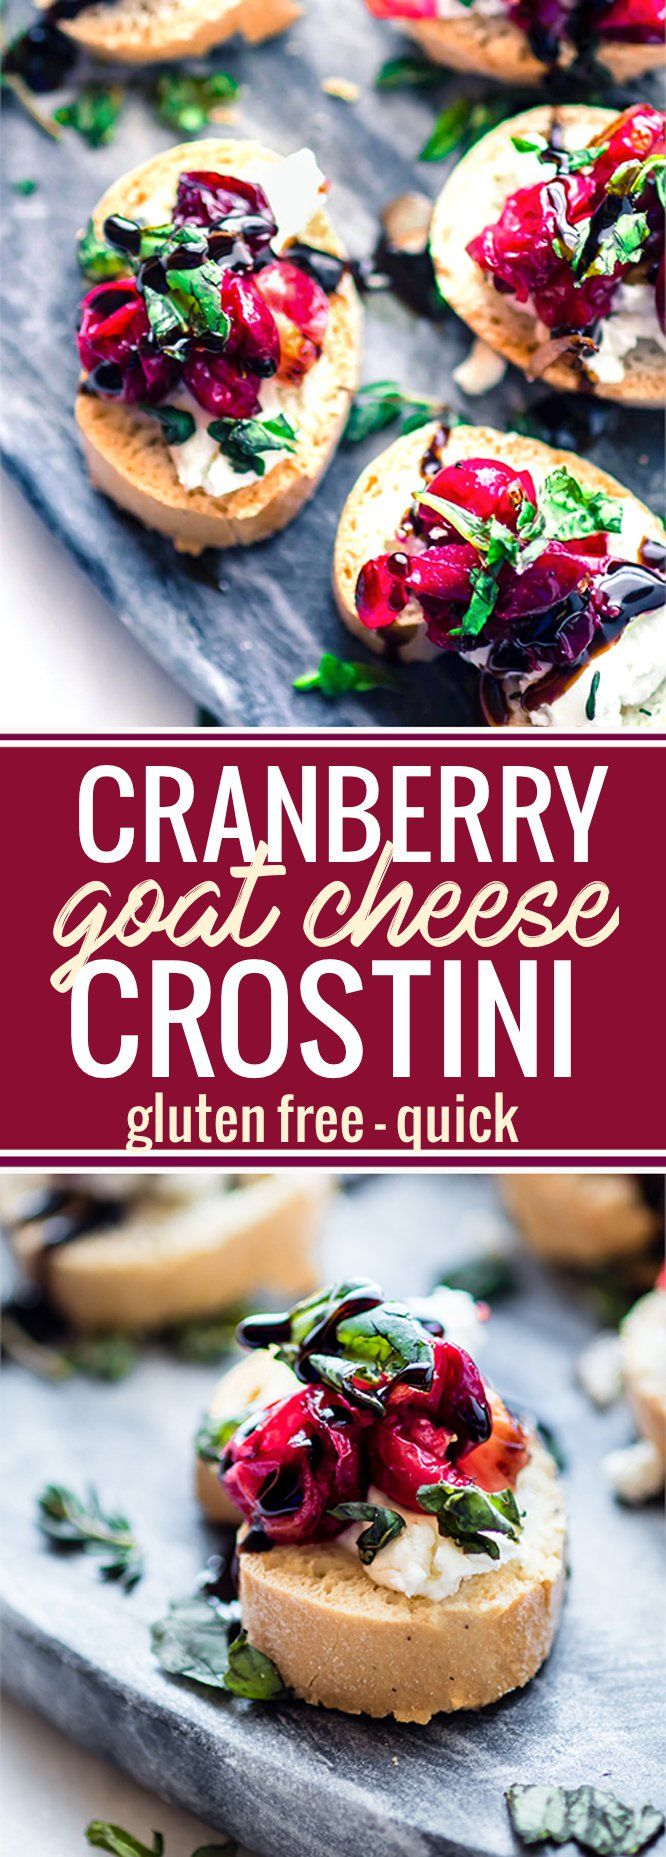 This quick cranberry goat cheese gluten free crostini is made with roasted balsamic cranberries, sweet onion, then topped with fresh basil and balsamic glaze. Super quick, easy, healthy, and a delicious! One of my favorite crowd-pleasing appetizers. www.cottercrunch.com @cottercrunch